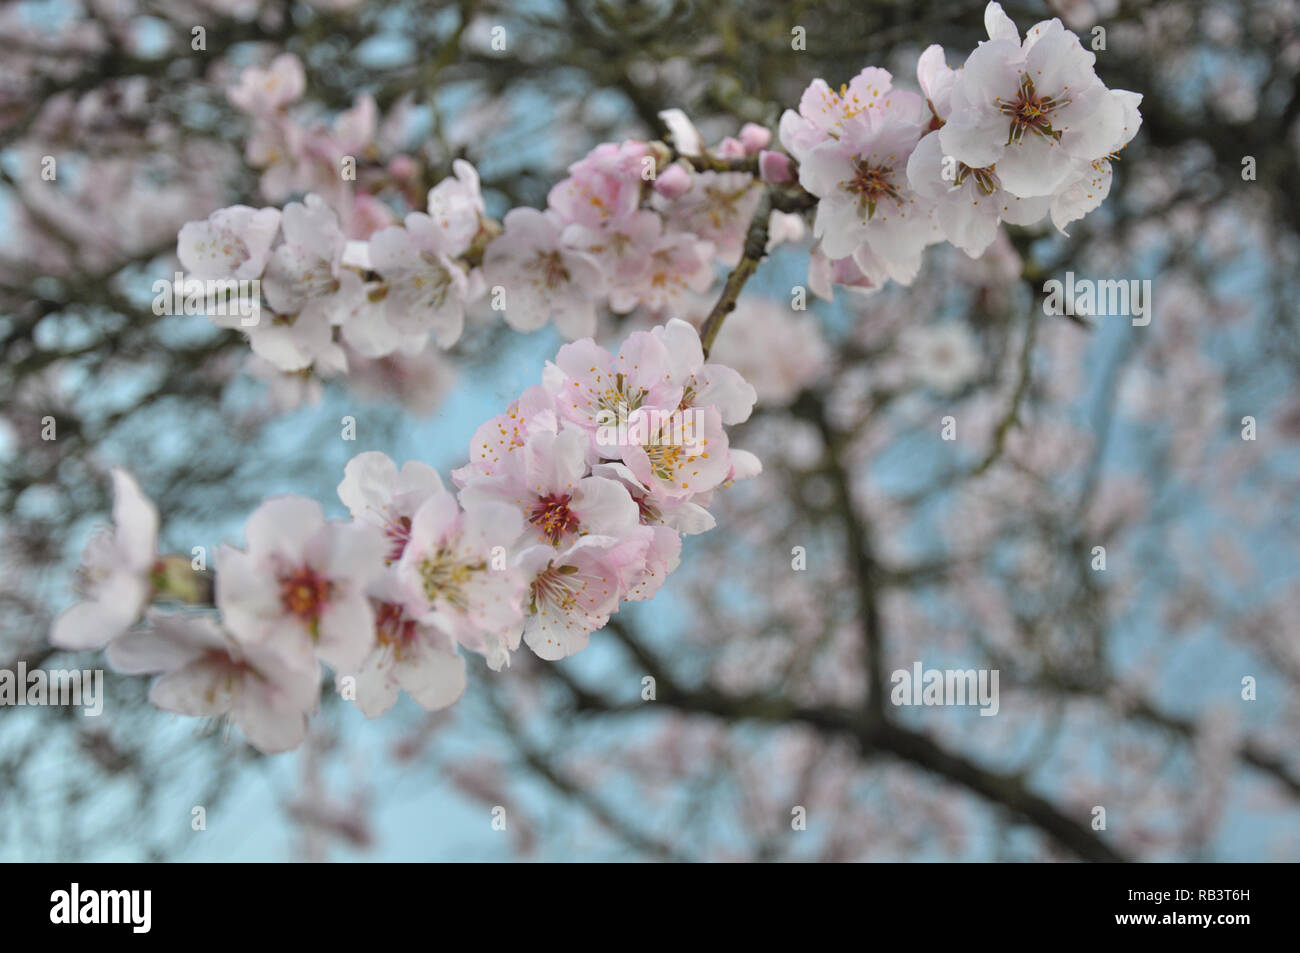 Almond blossoms in the tree crown by jziprian - Stock Image